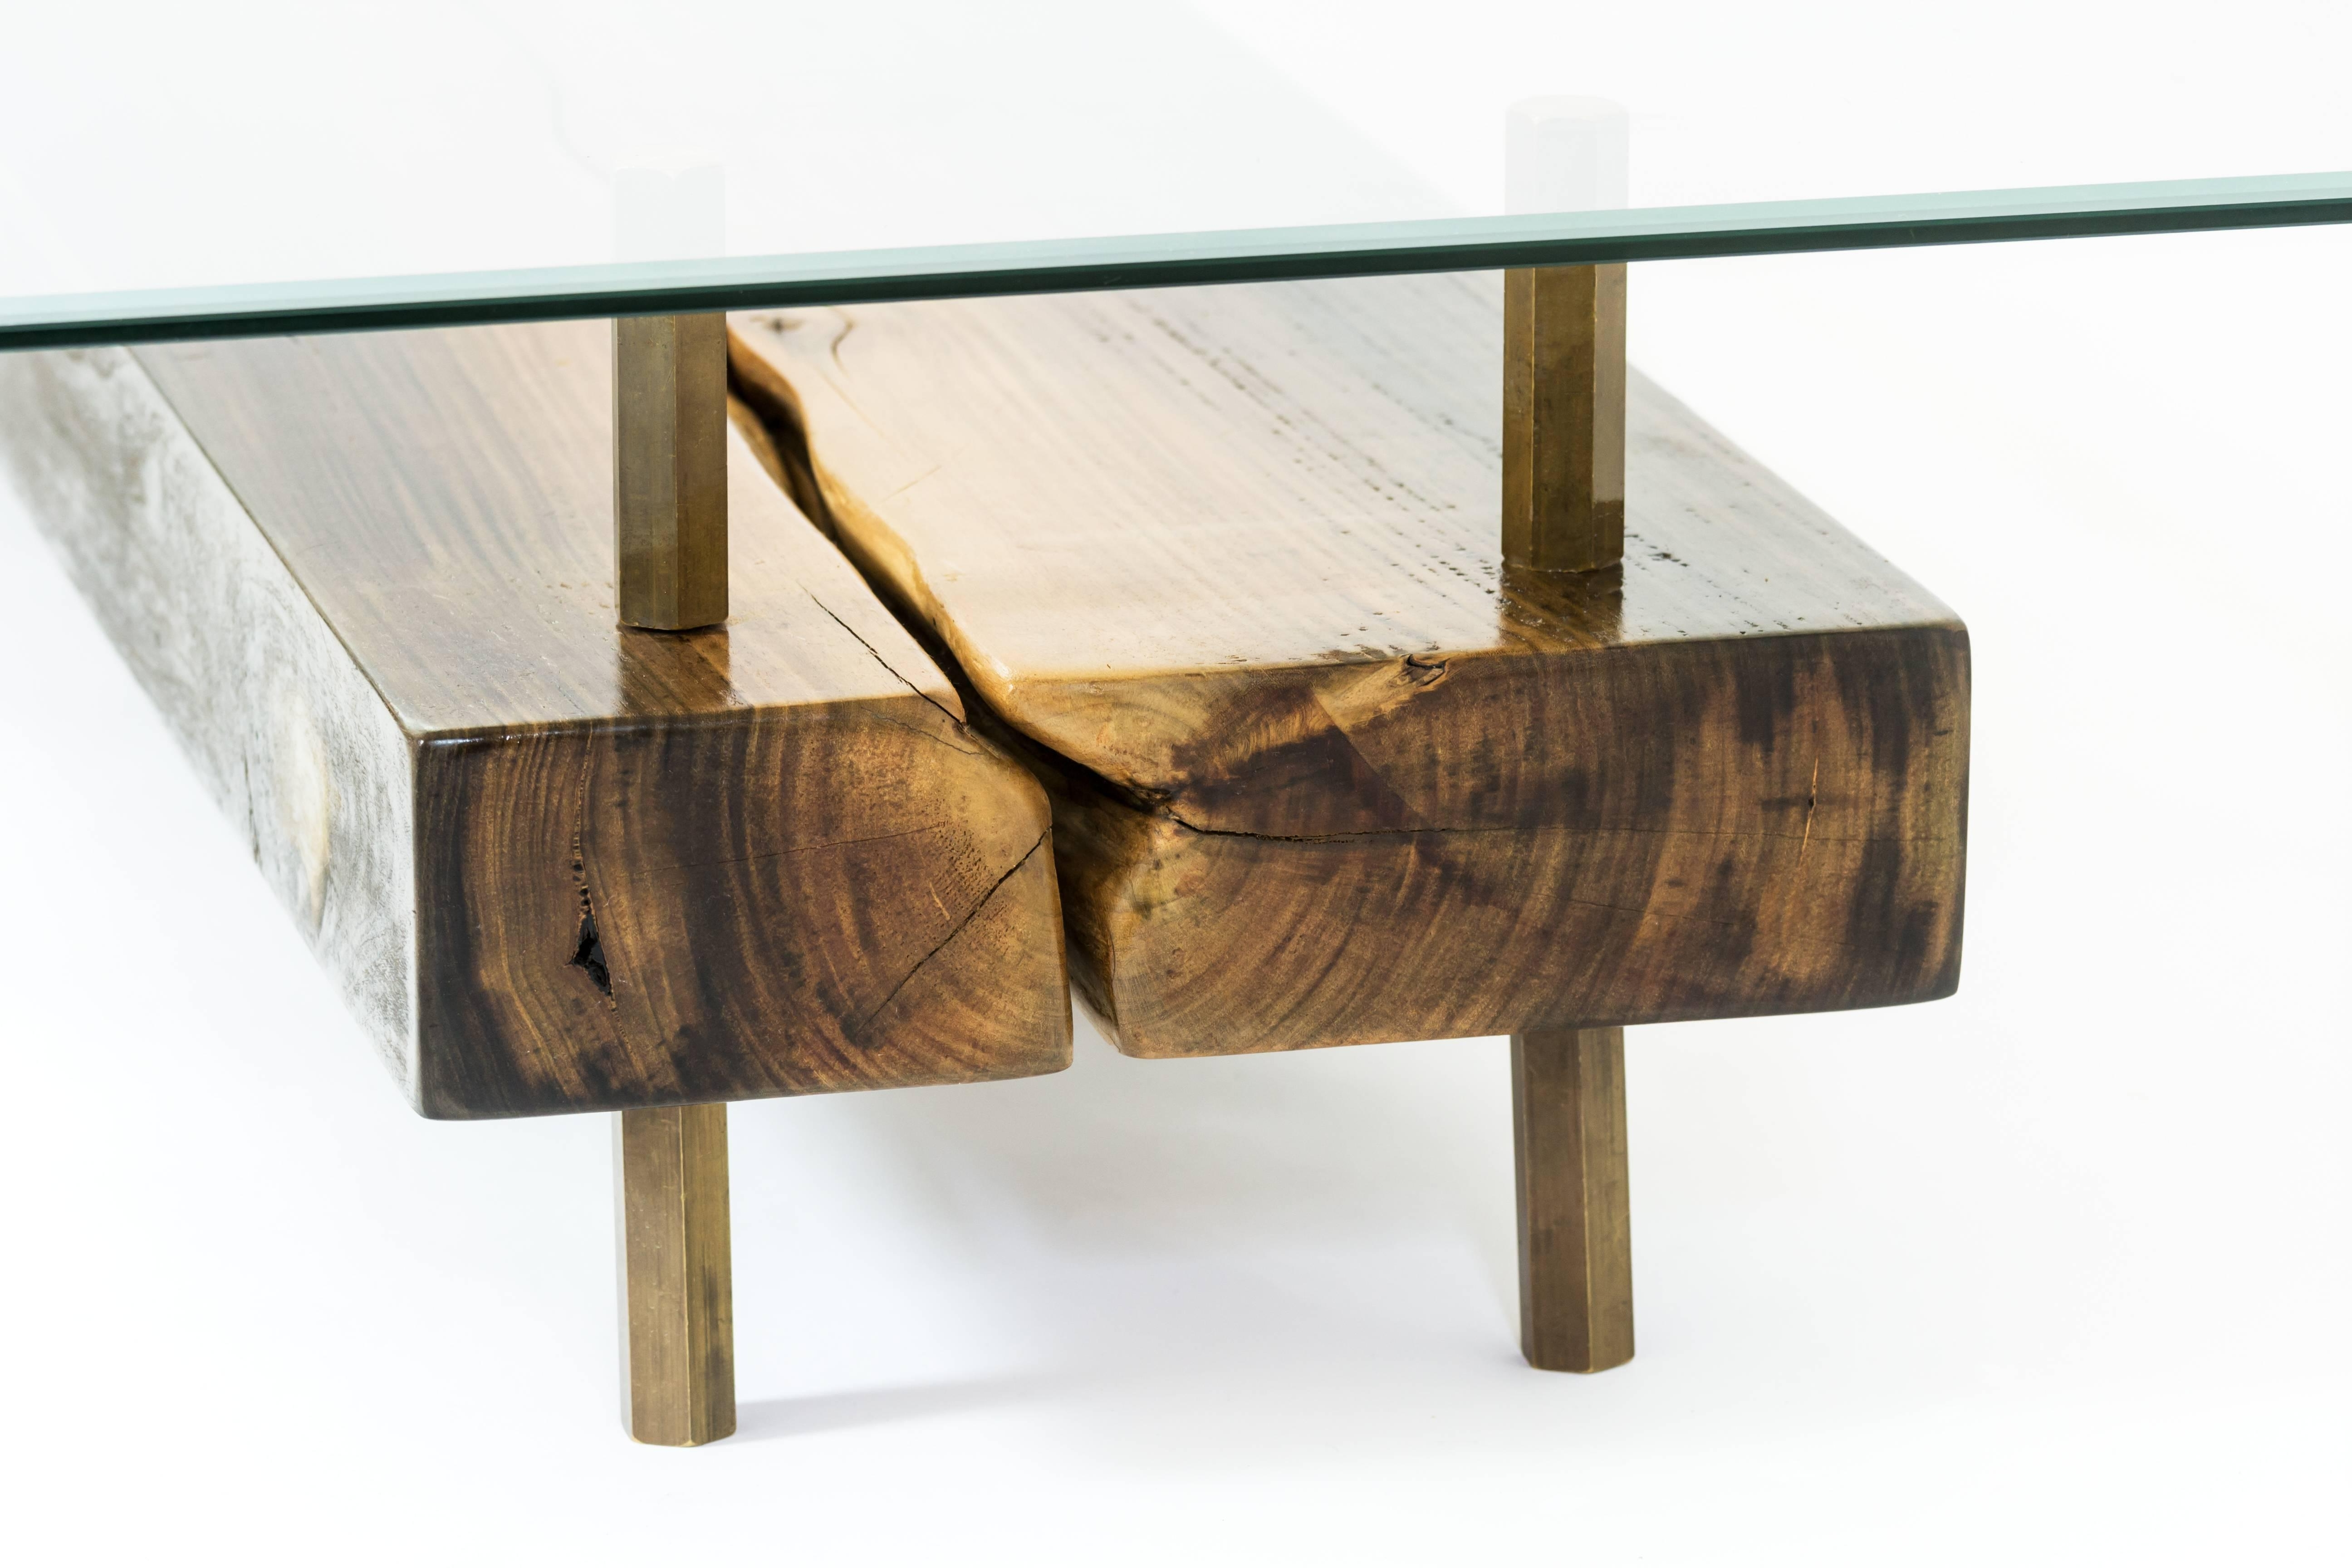 Rectangular Connection Of Mahoe Wood, Brass Legs And Glass Cocktail Regarding Most Popular Rectangular Coffee Tables With Brass Legs (View 15 of 20)